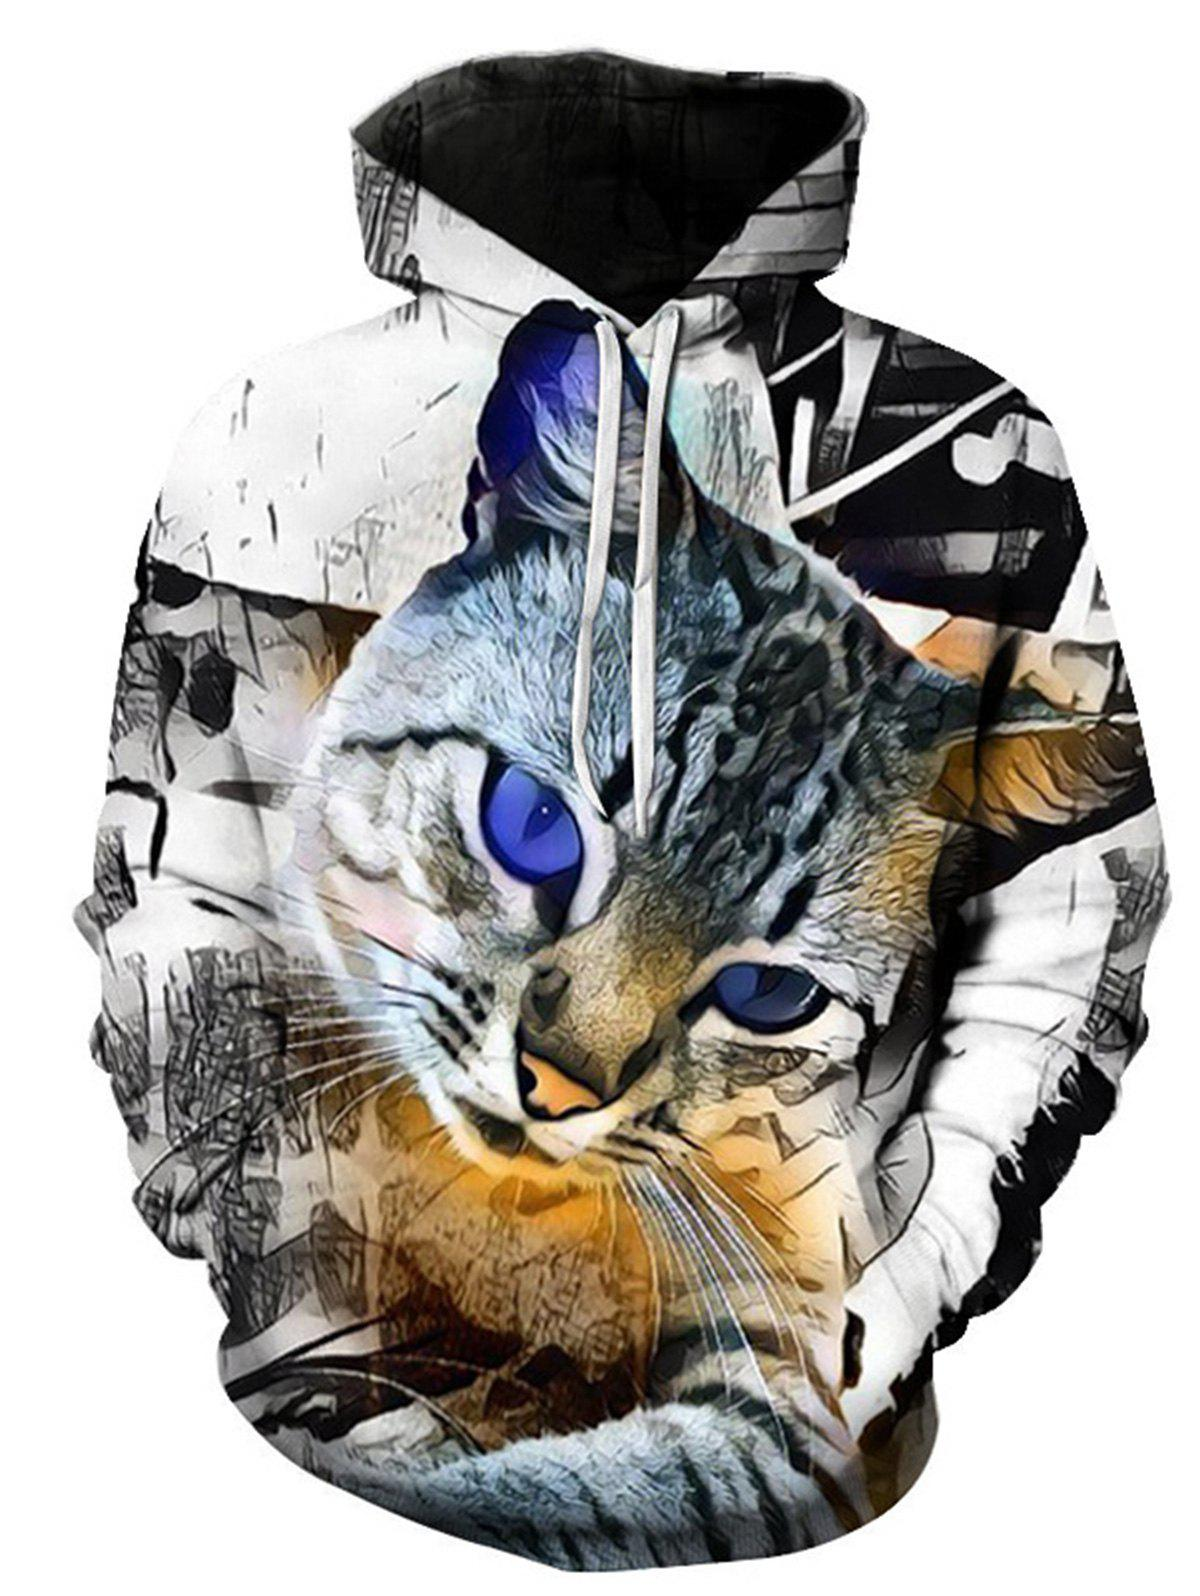 Pouch Pocket 3D Cat Print Pullover HoodieMEN<br><br>Size: 3XL; Color: COLORMIX; Material: Cotton,Polyester; Shirt Length: Regular; Sleeve Length: Full; Style: Fashion; Patterns: 3D,Animal; Weight: 0.4800kg; Package Contents: 1 x Hoodie;